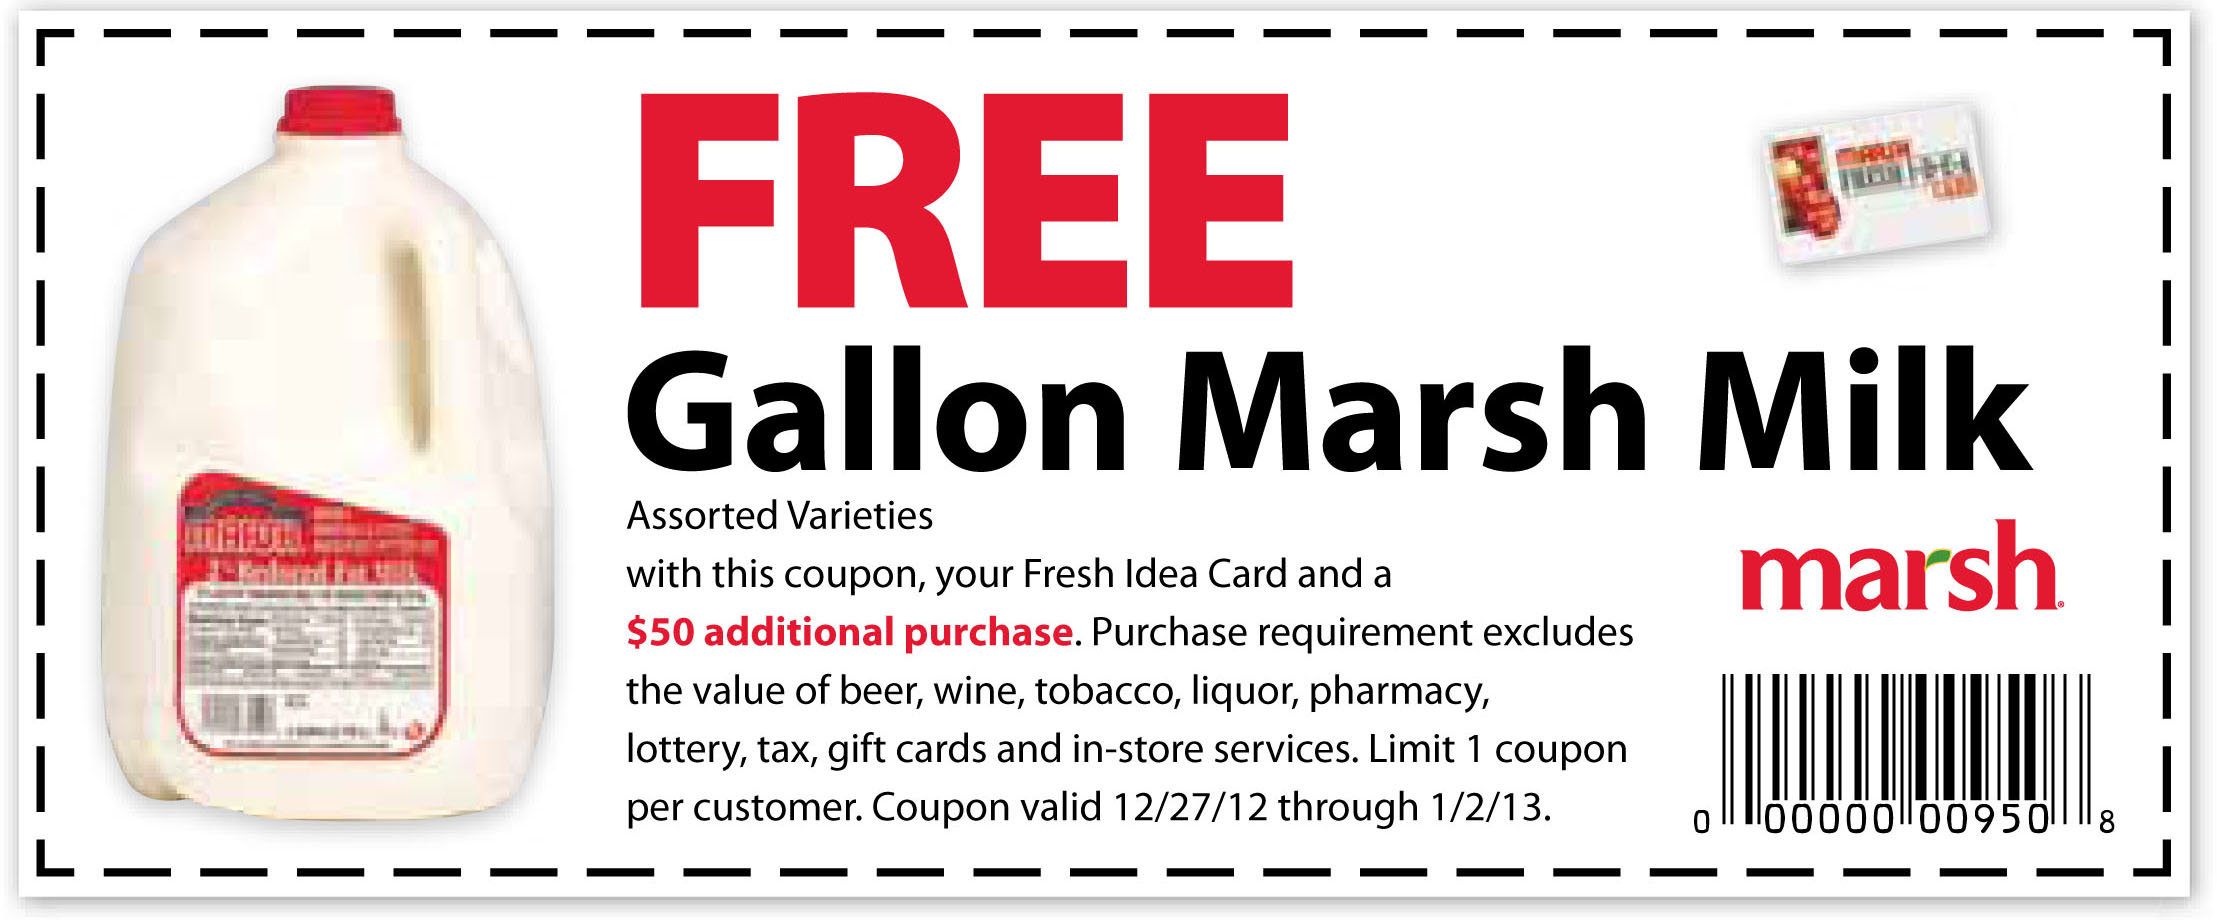 MARSH - FREE Gallon of Milk Printable Coupon | Print ...